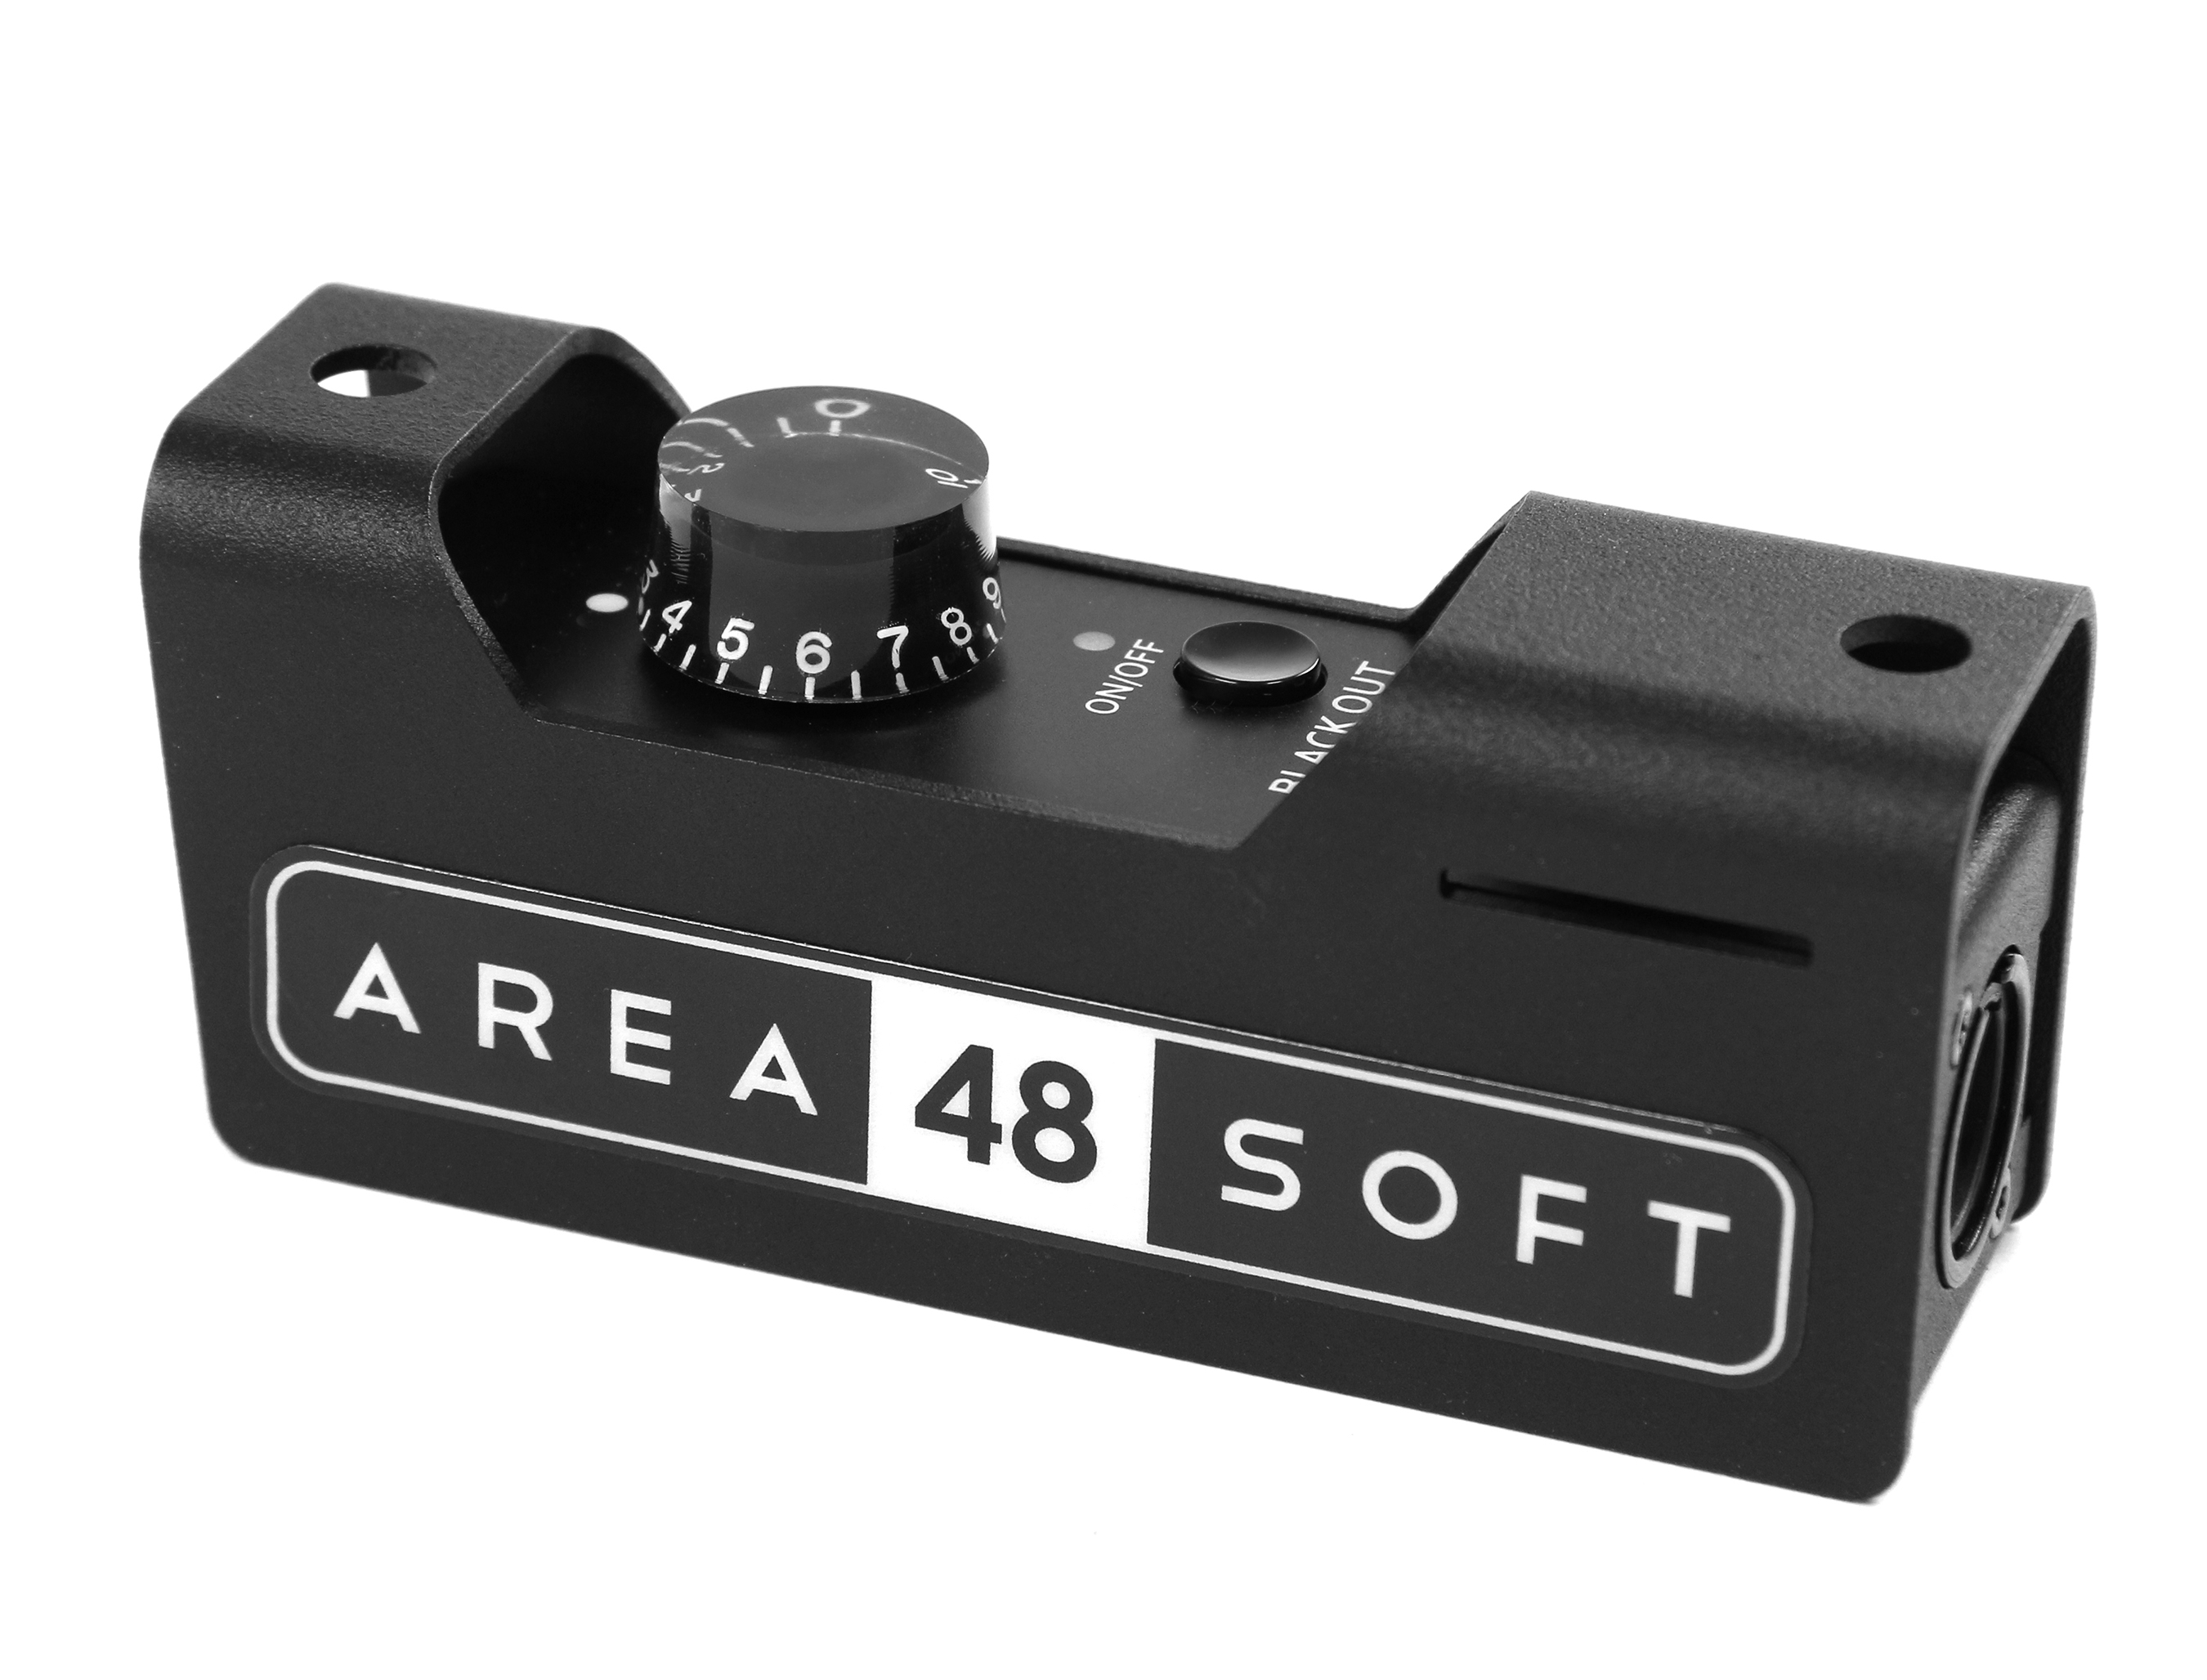 Remote Dimmer for Area 48